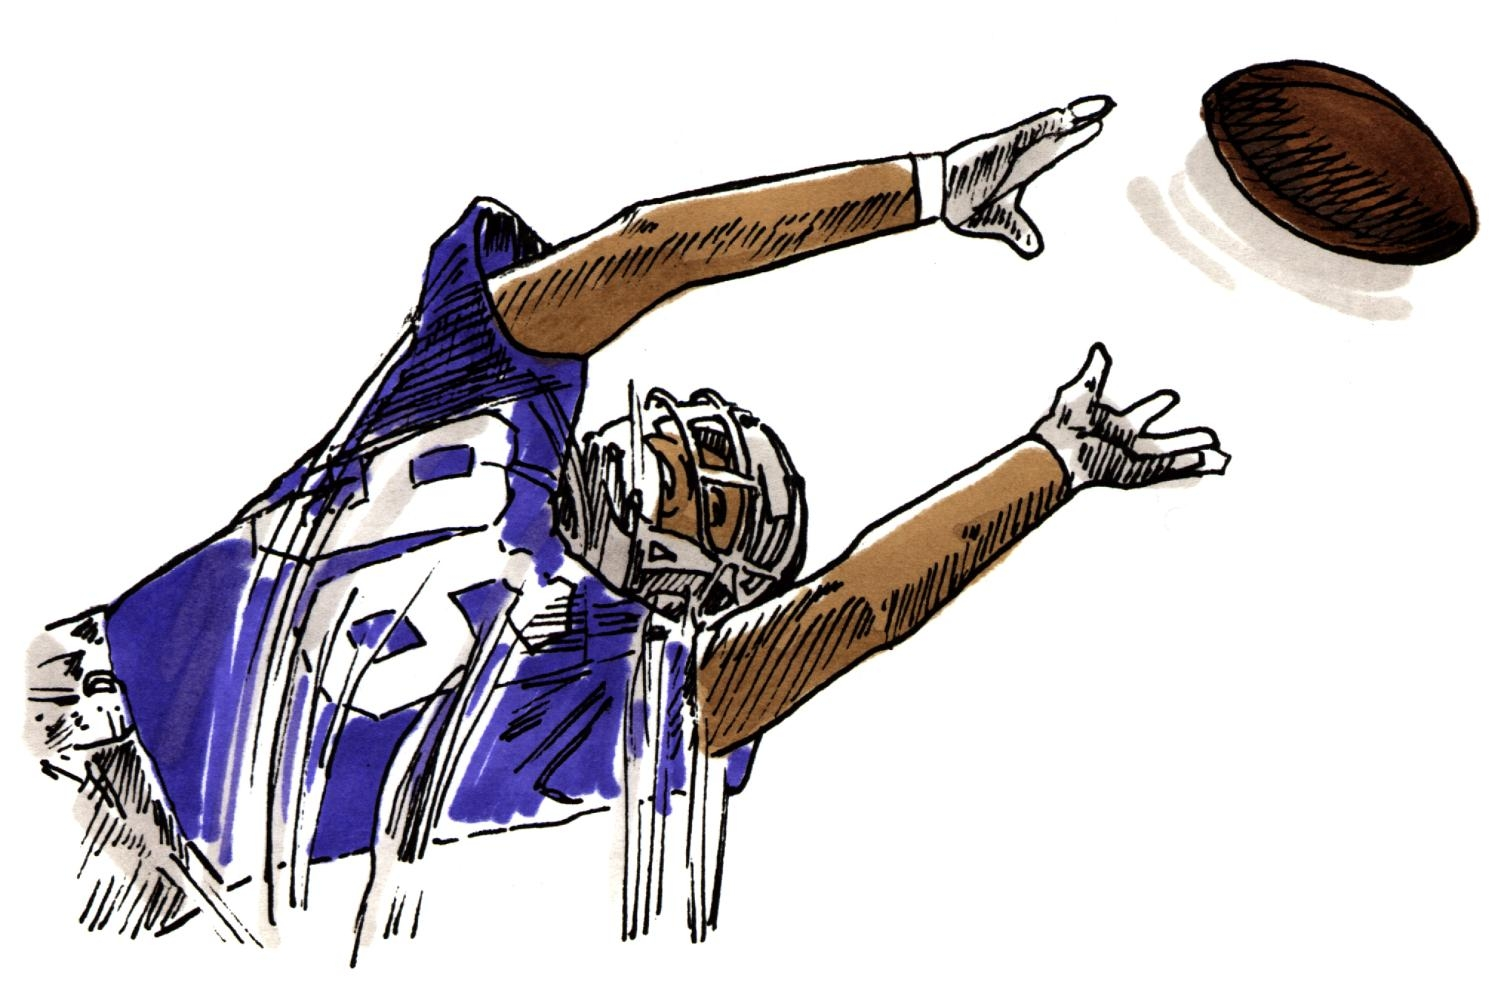 Football Player Catching Clipart.